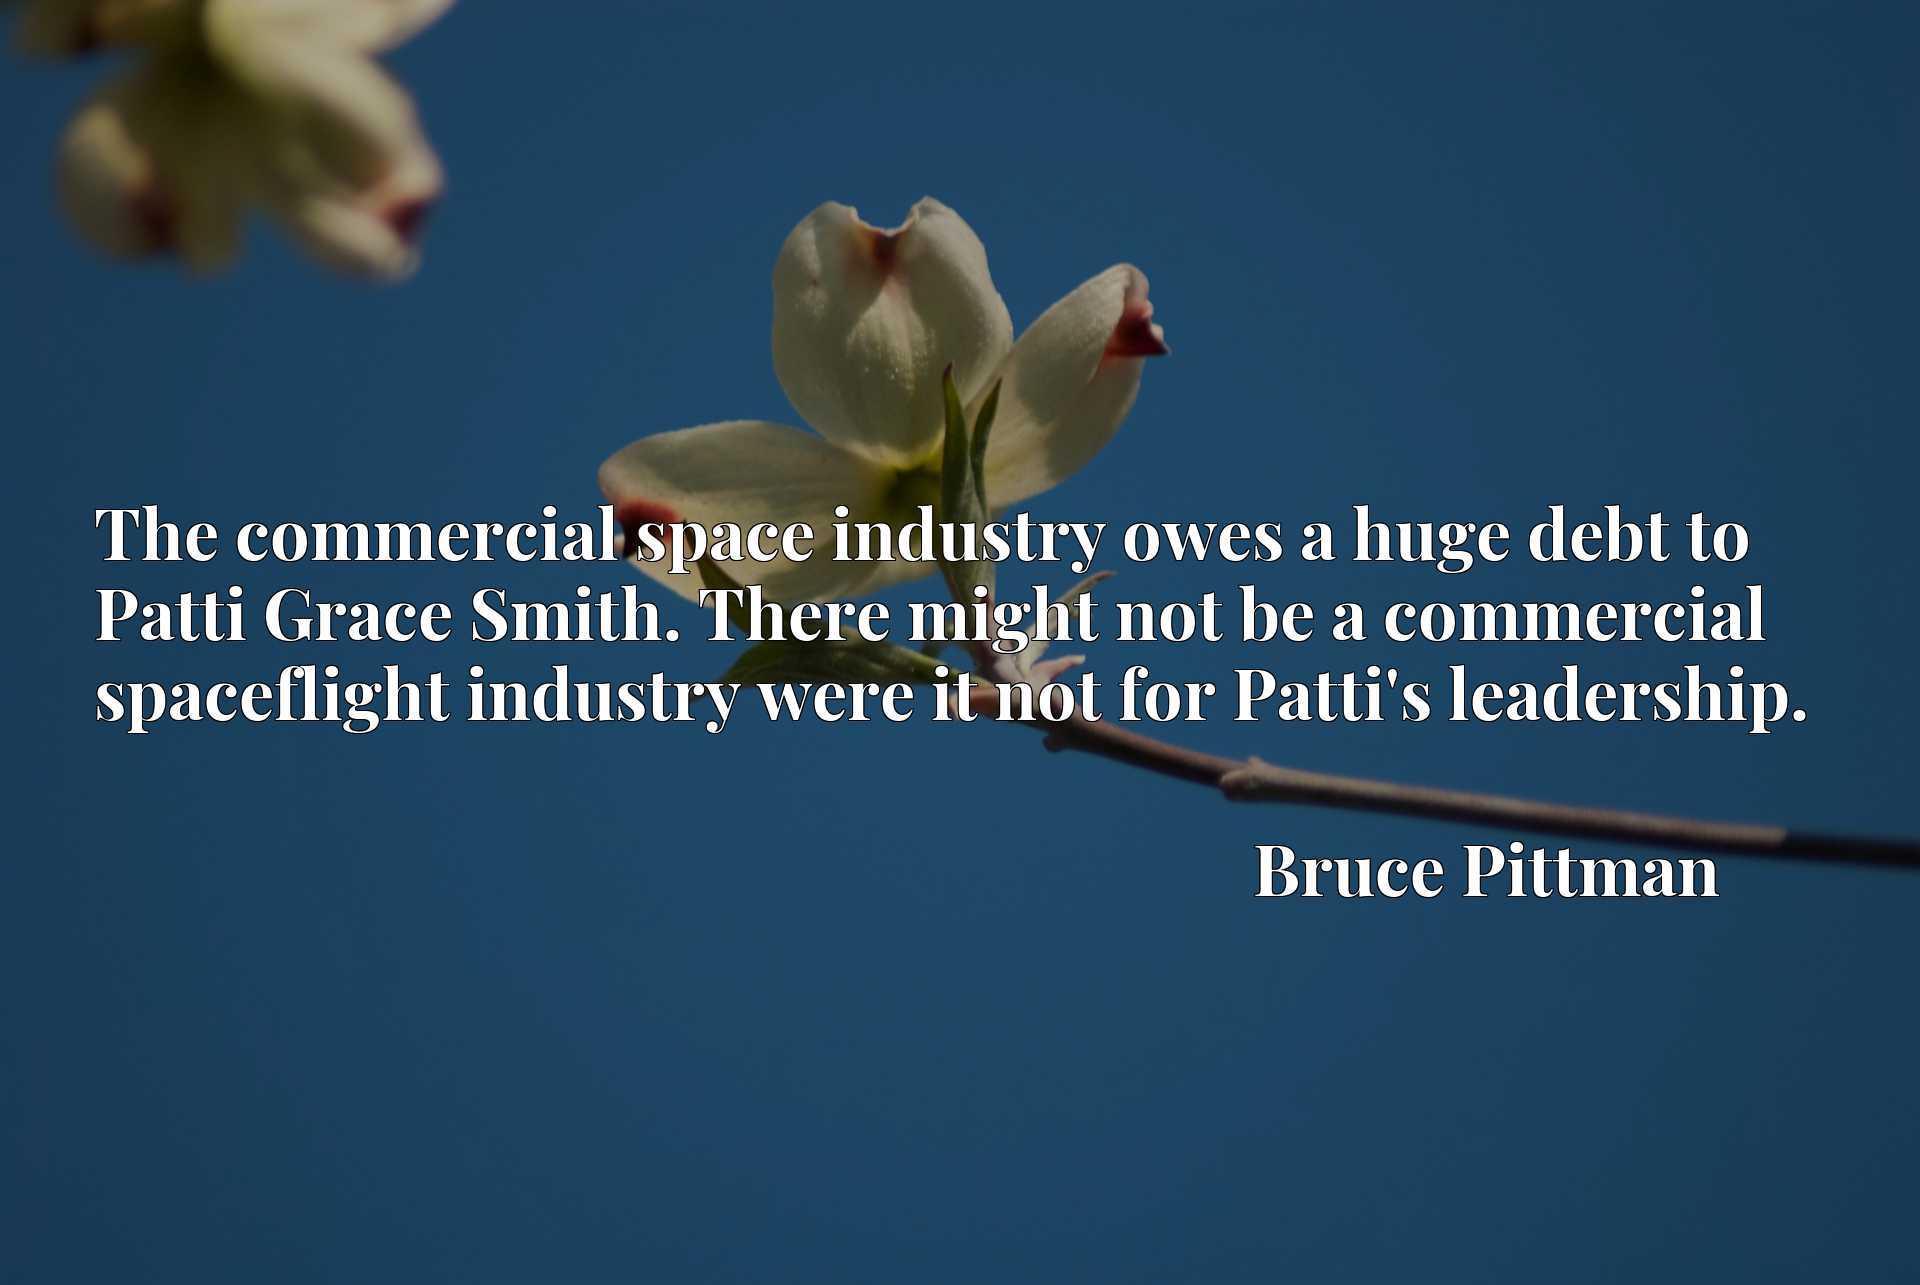 The commercial space industry owes a huge debt to Patti Grace Smith. There might not be a commercial spaceflight industry were it not for Patti's leadership.